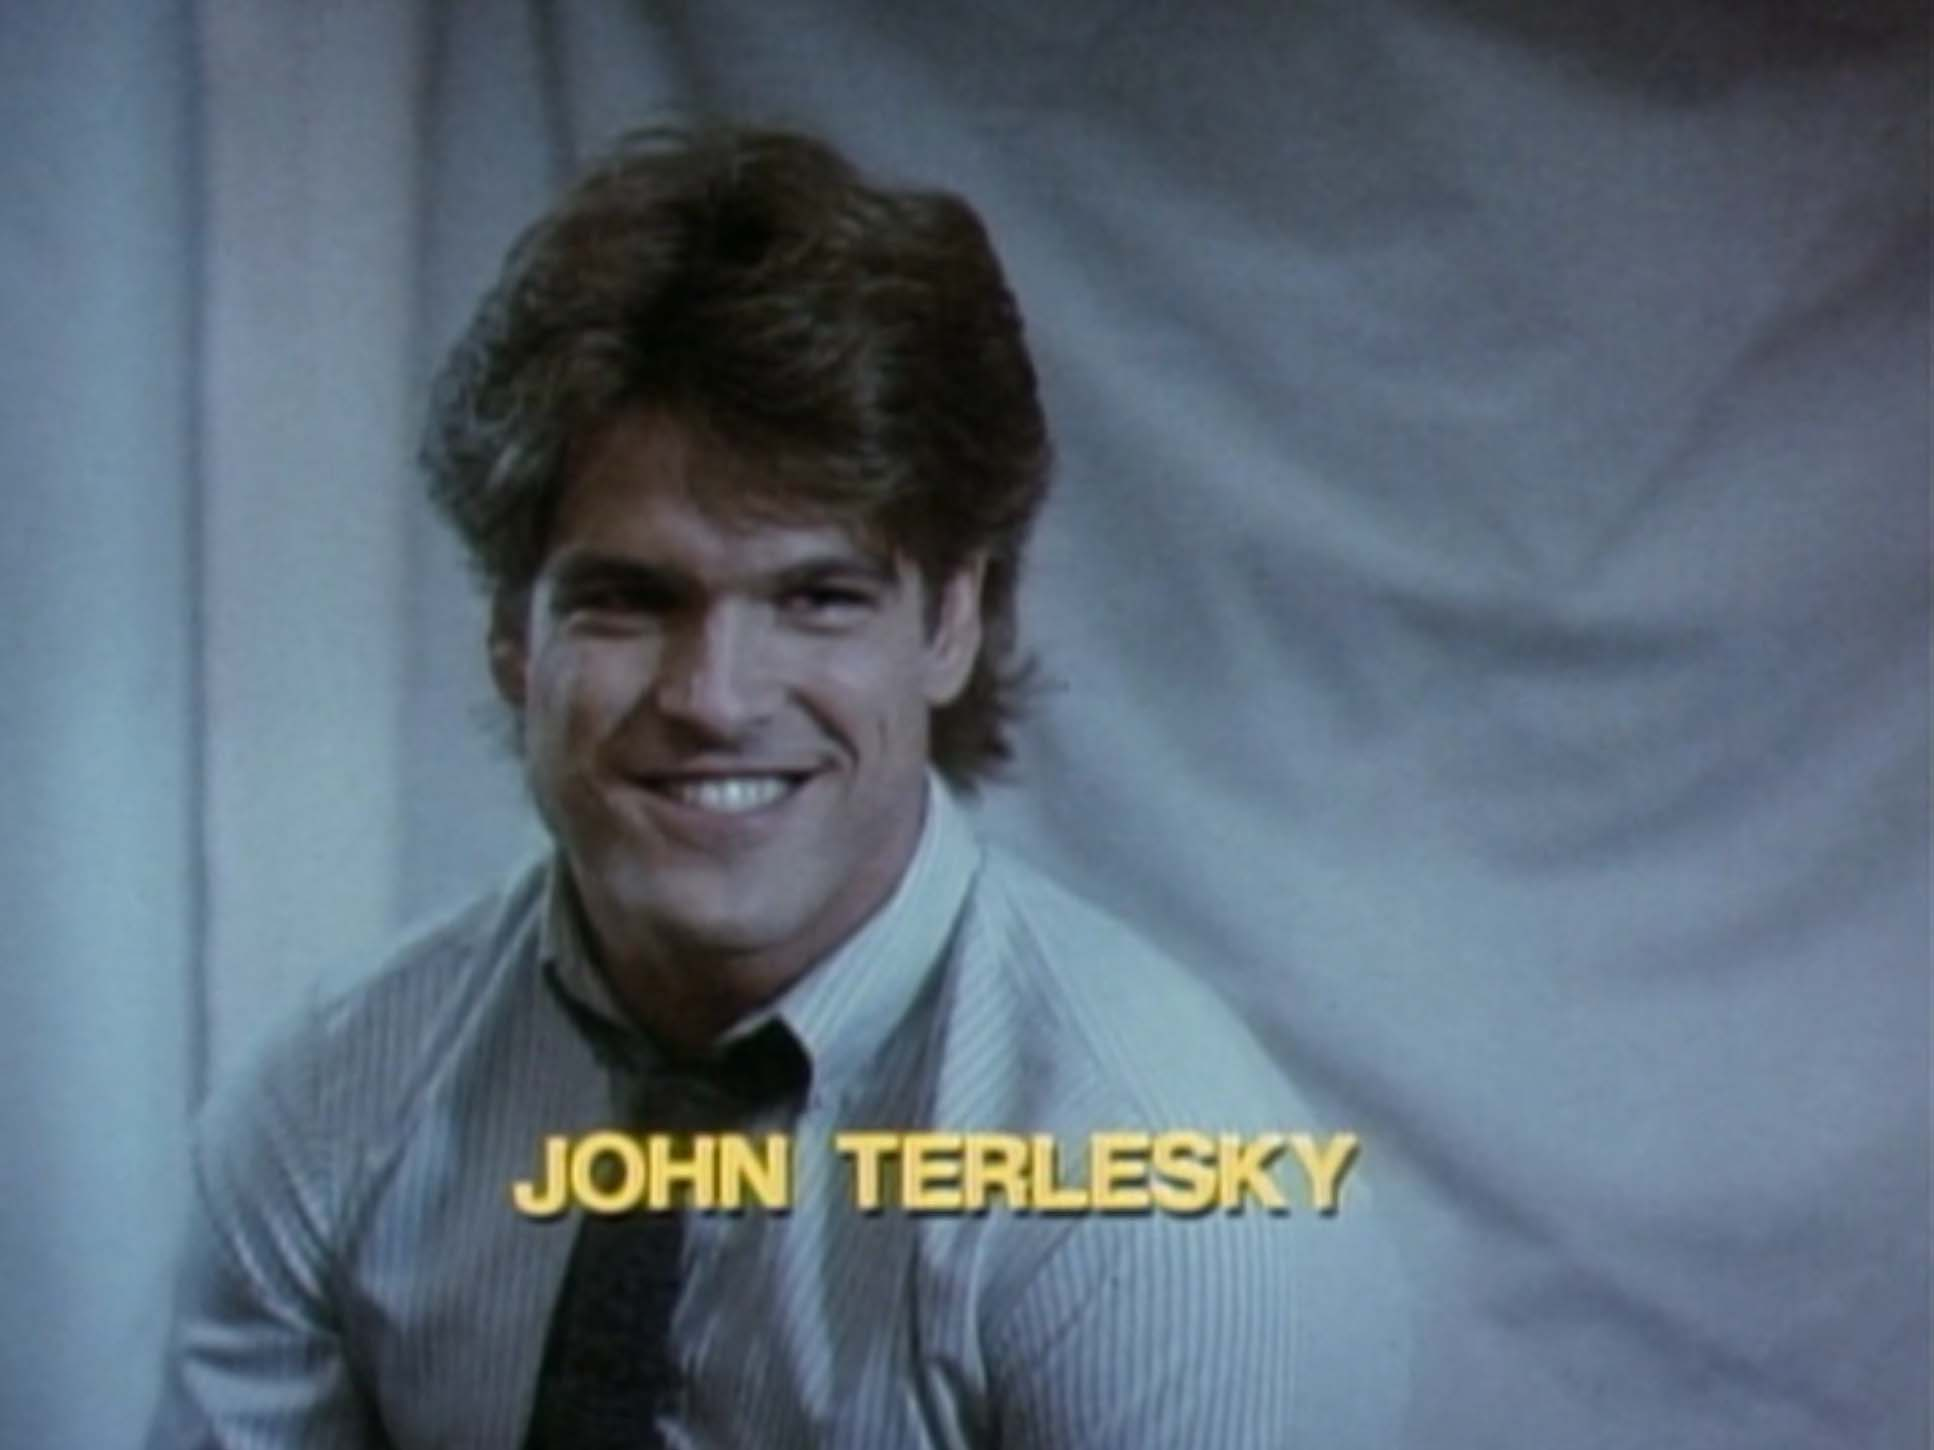 John Terlesky in Chopping Mall